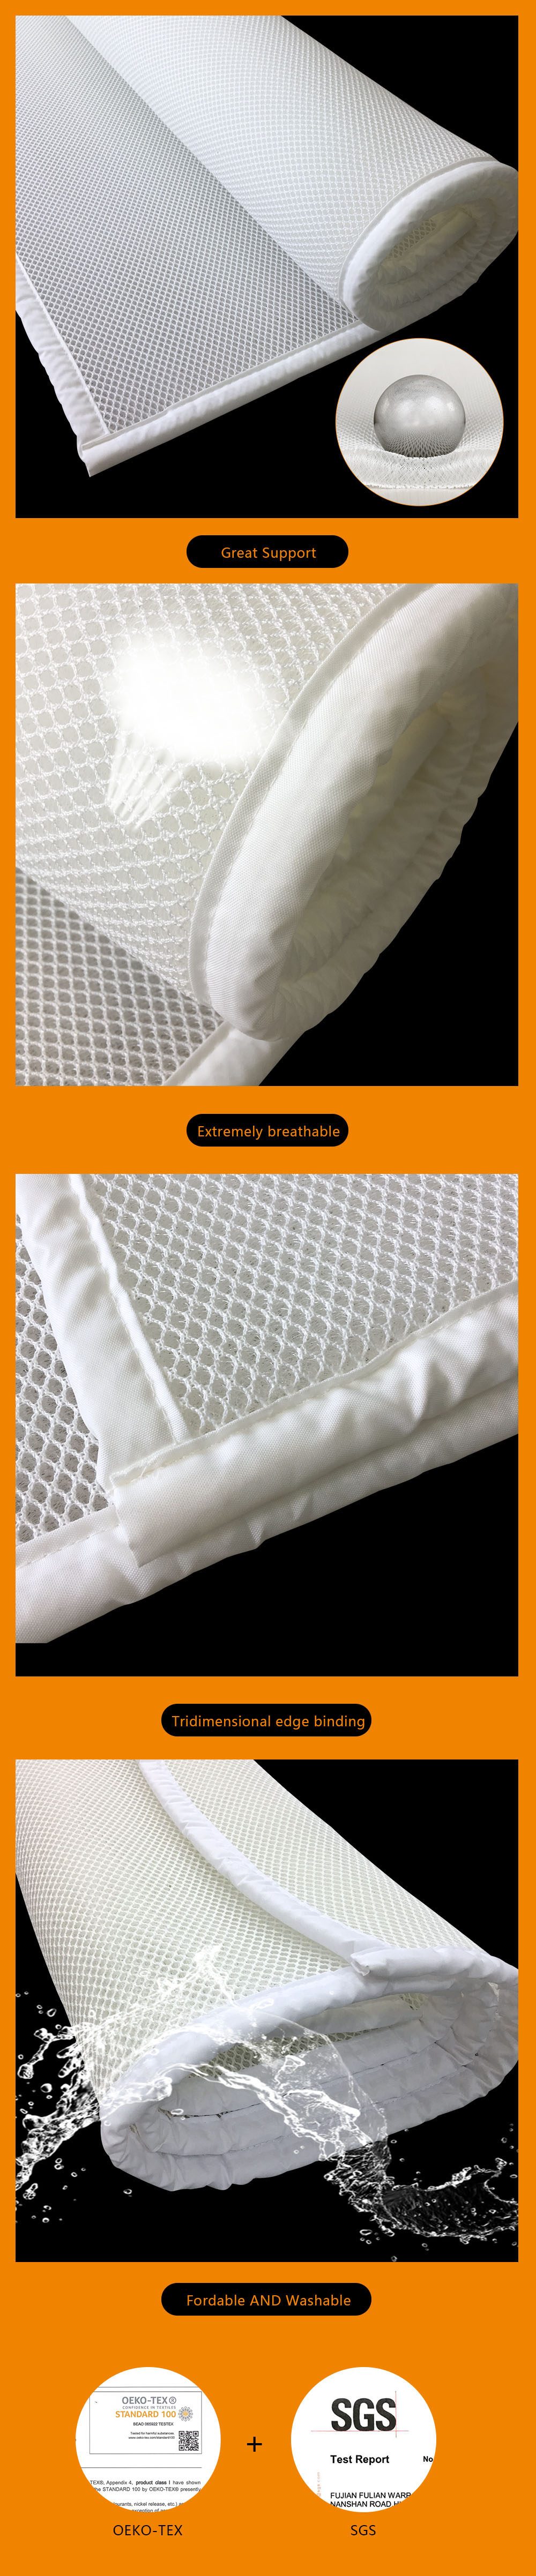 Dünne Matratze China Herstellung Weiß 3d Air Mesh Dünne Matratze Pad,kühle Matratze Pad, Matratze Cooling Pad - Buy Matratze Cooling Pad,kühle Matratze Pad,matratze Pad Product On Alibaba.com